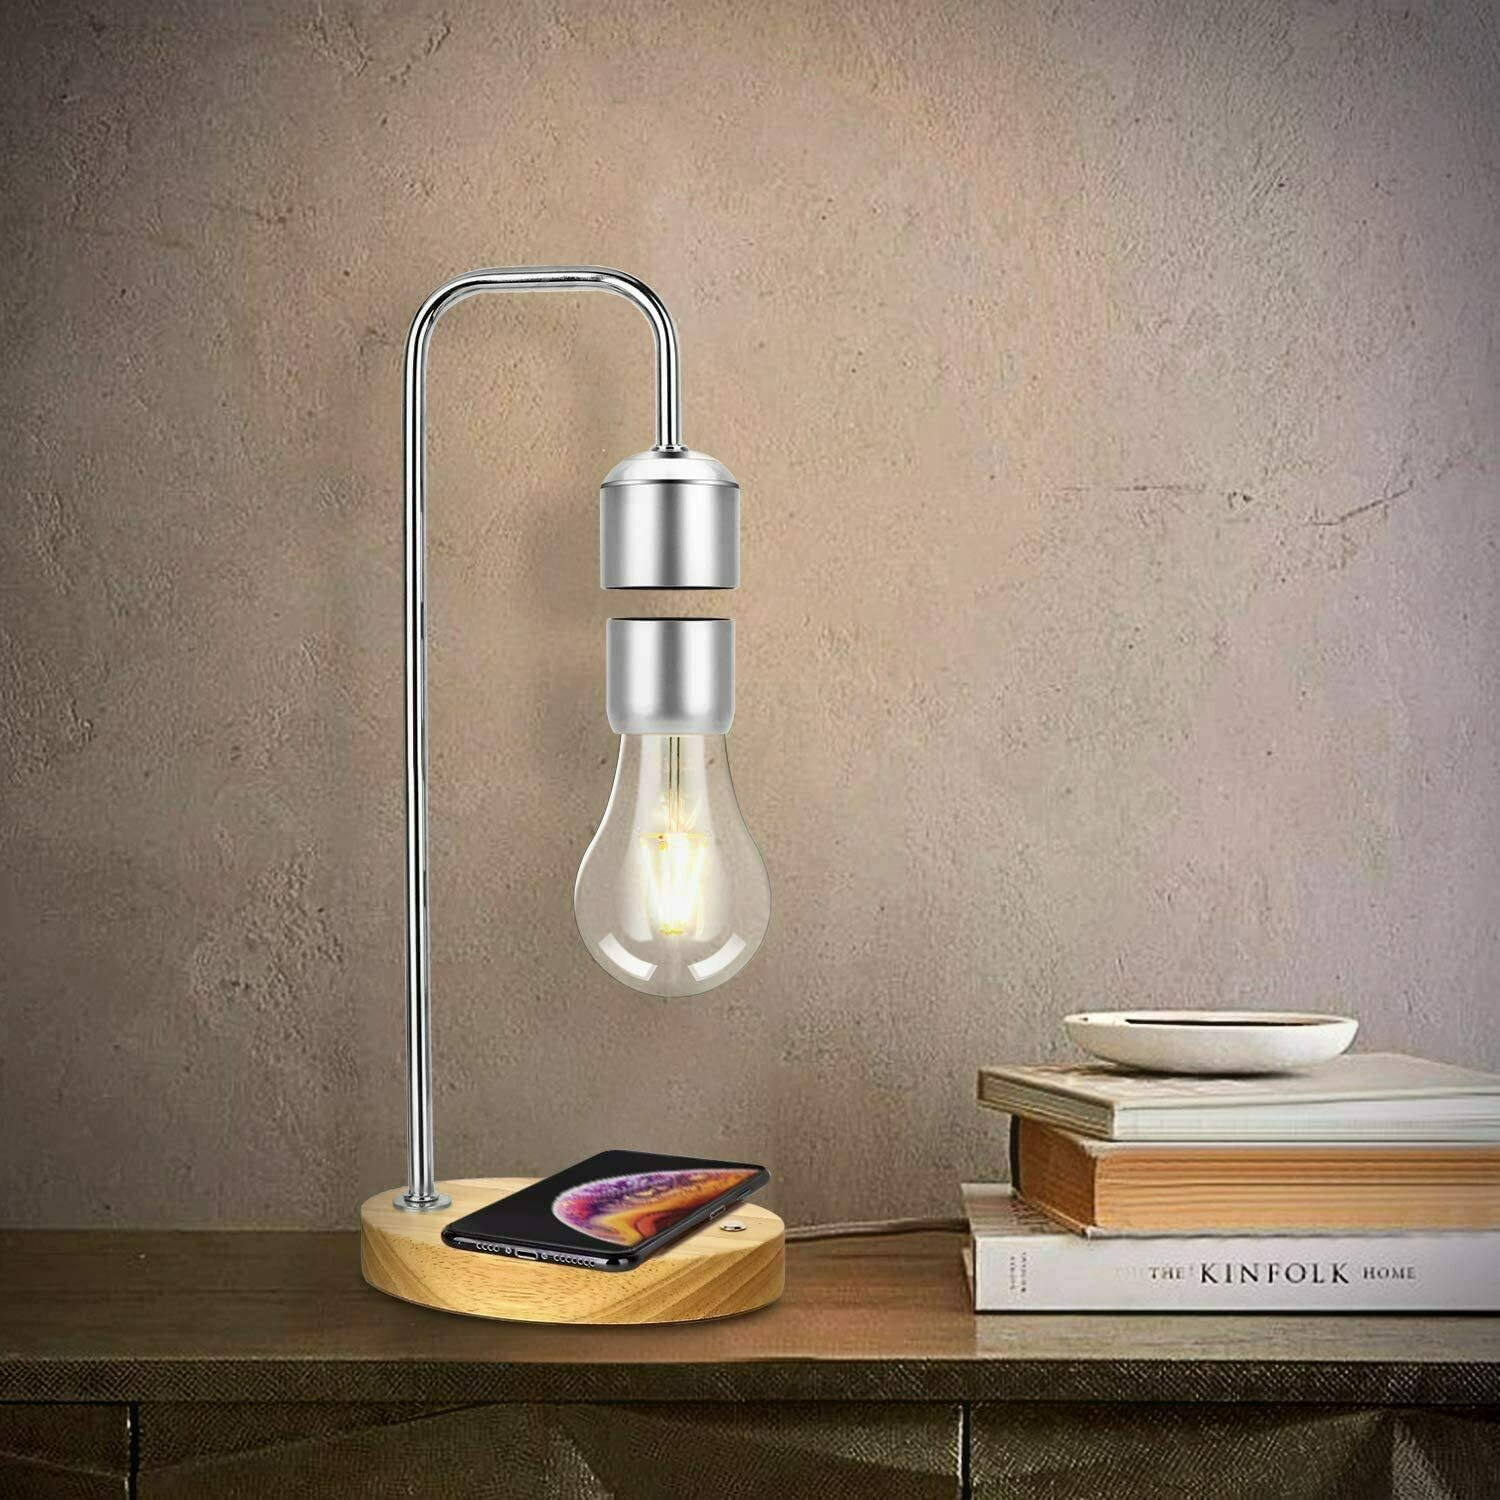 Modern Unique Levitating Lamp with Floating Light Bulb, Simplistic and Innovative Design, Warm Decorative Night Light